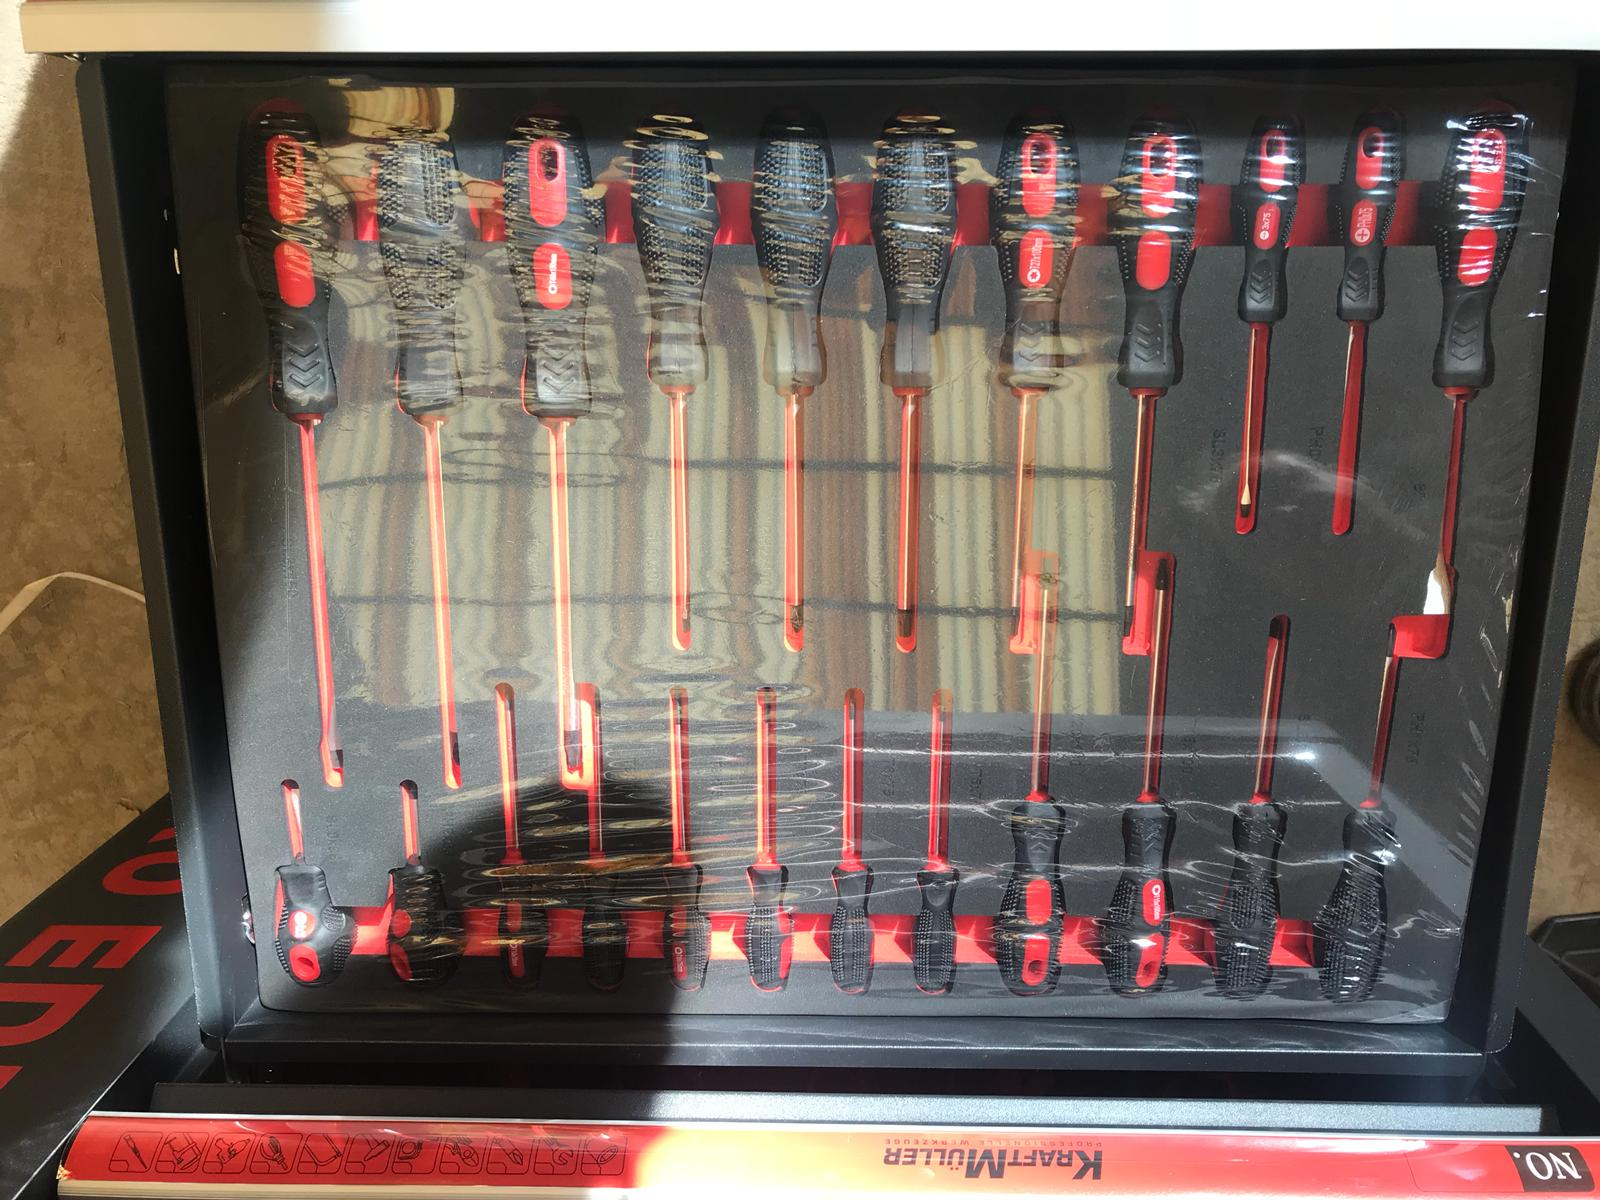 Lot 10060 - V Brand New Seven Drawer Locking Garage Tool Cabinet With Lockable Casters-Seven EVA Drawers of